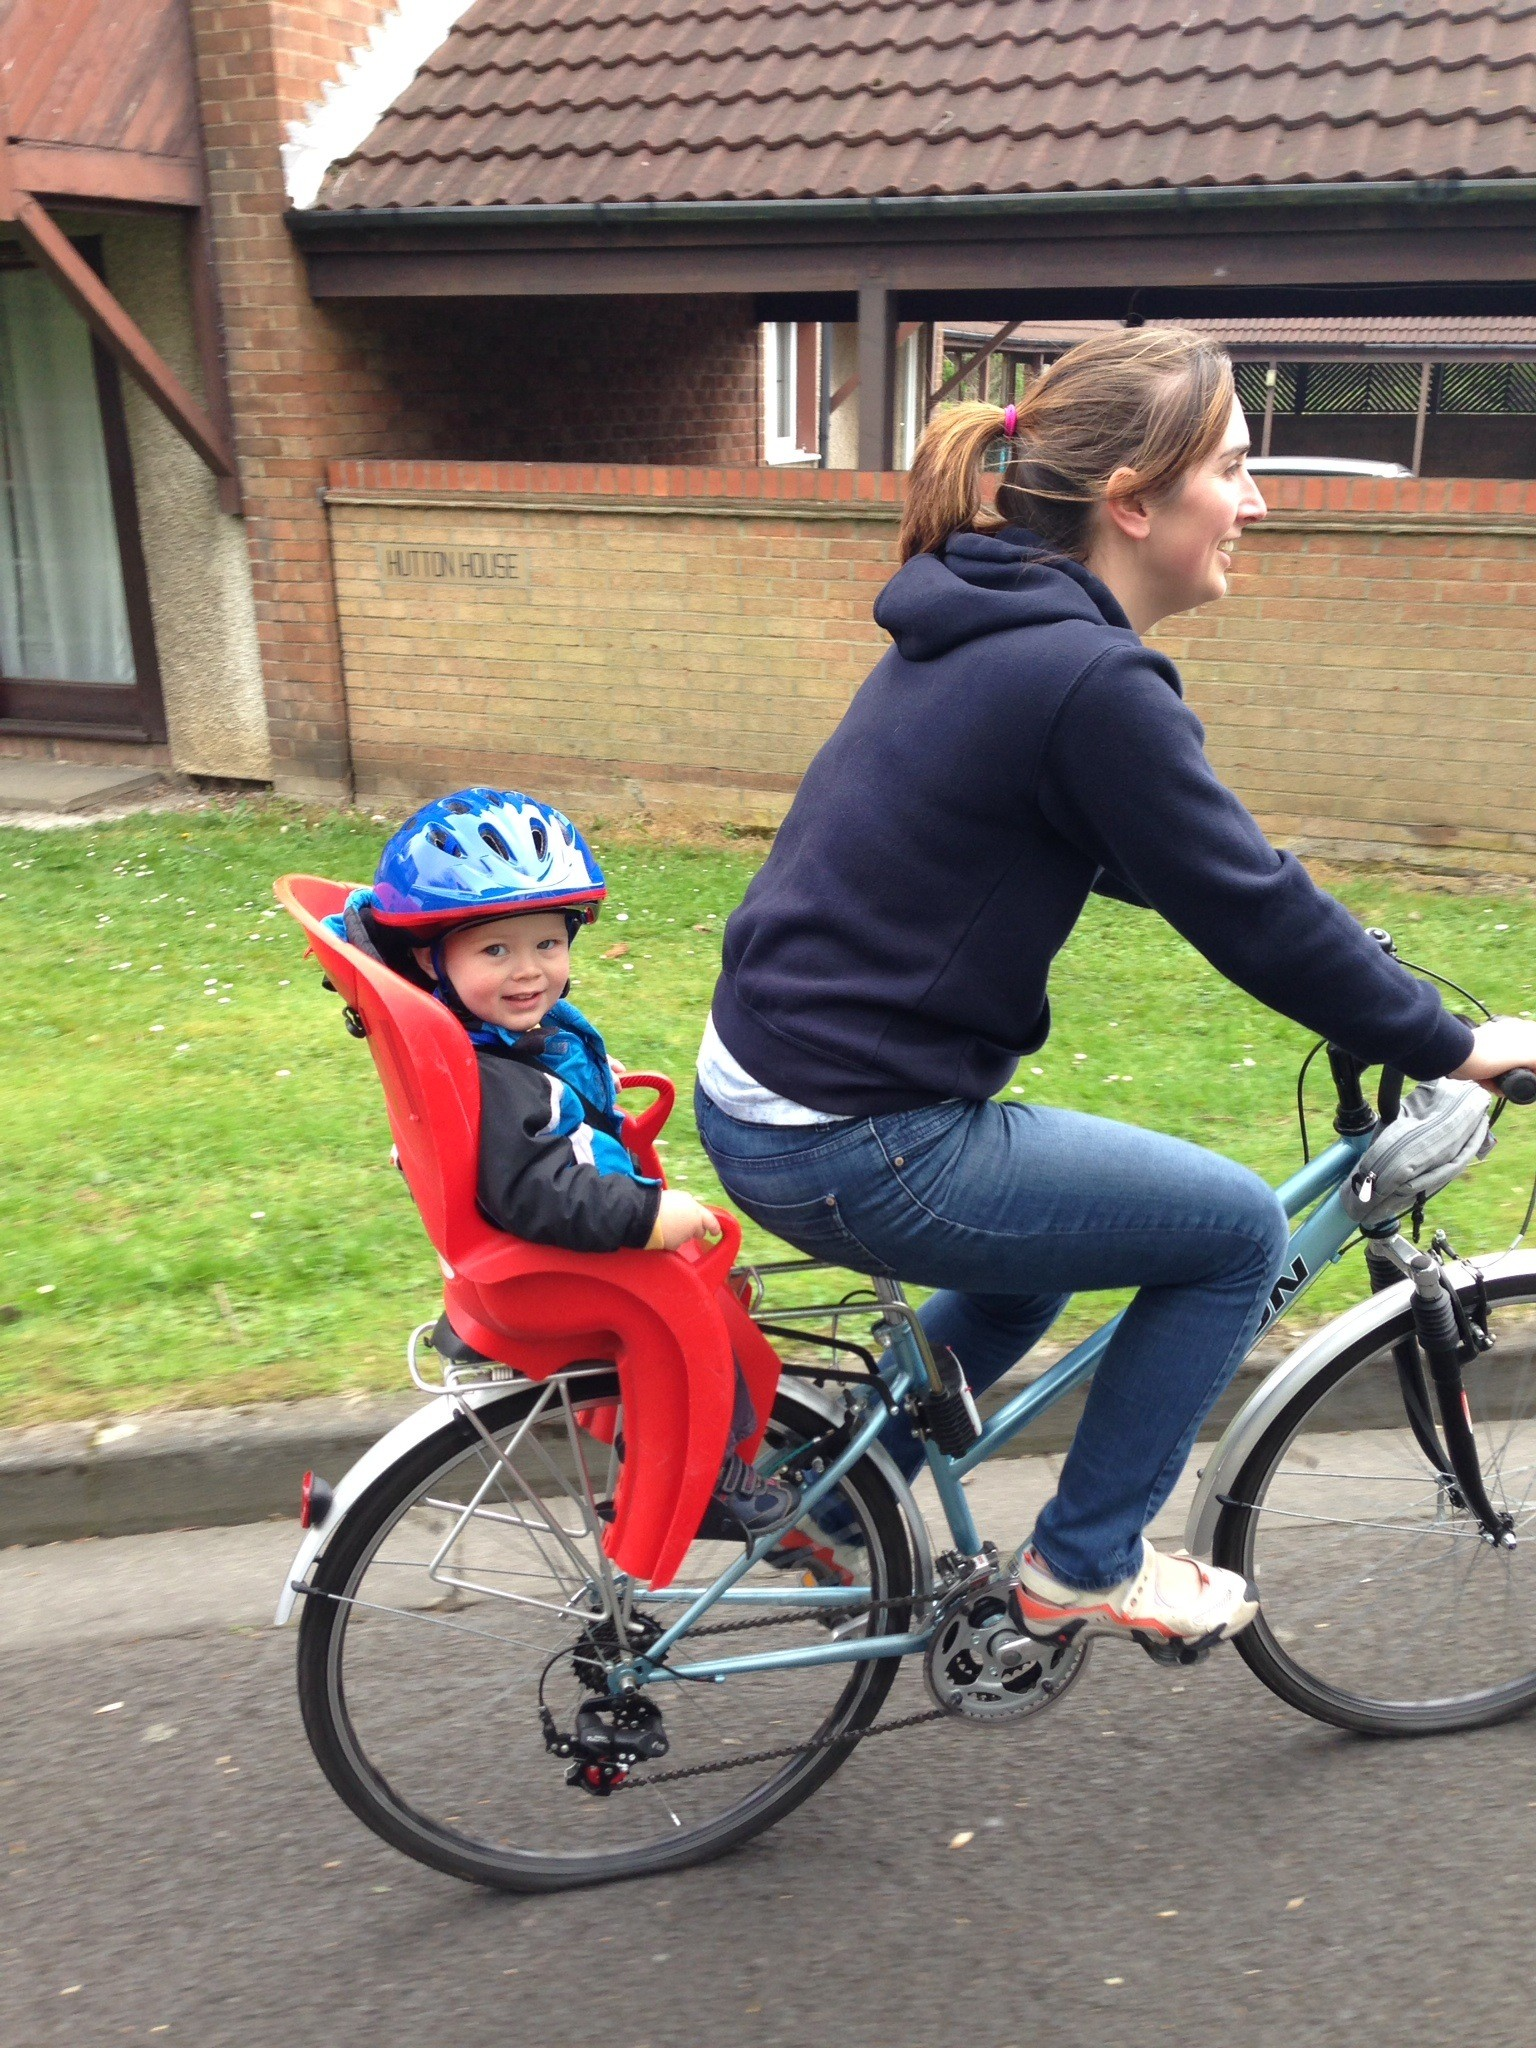 cycling with toddler in bike seat